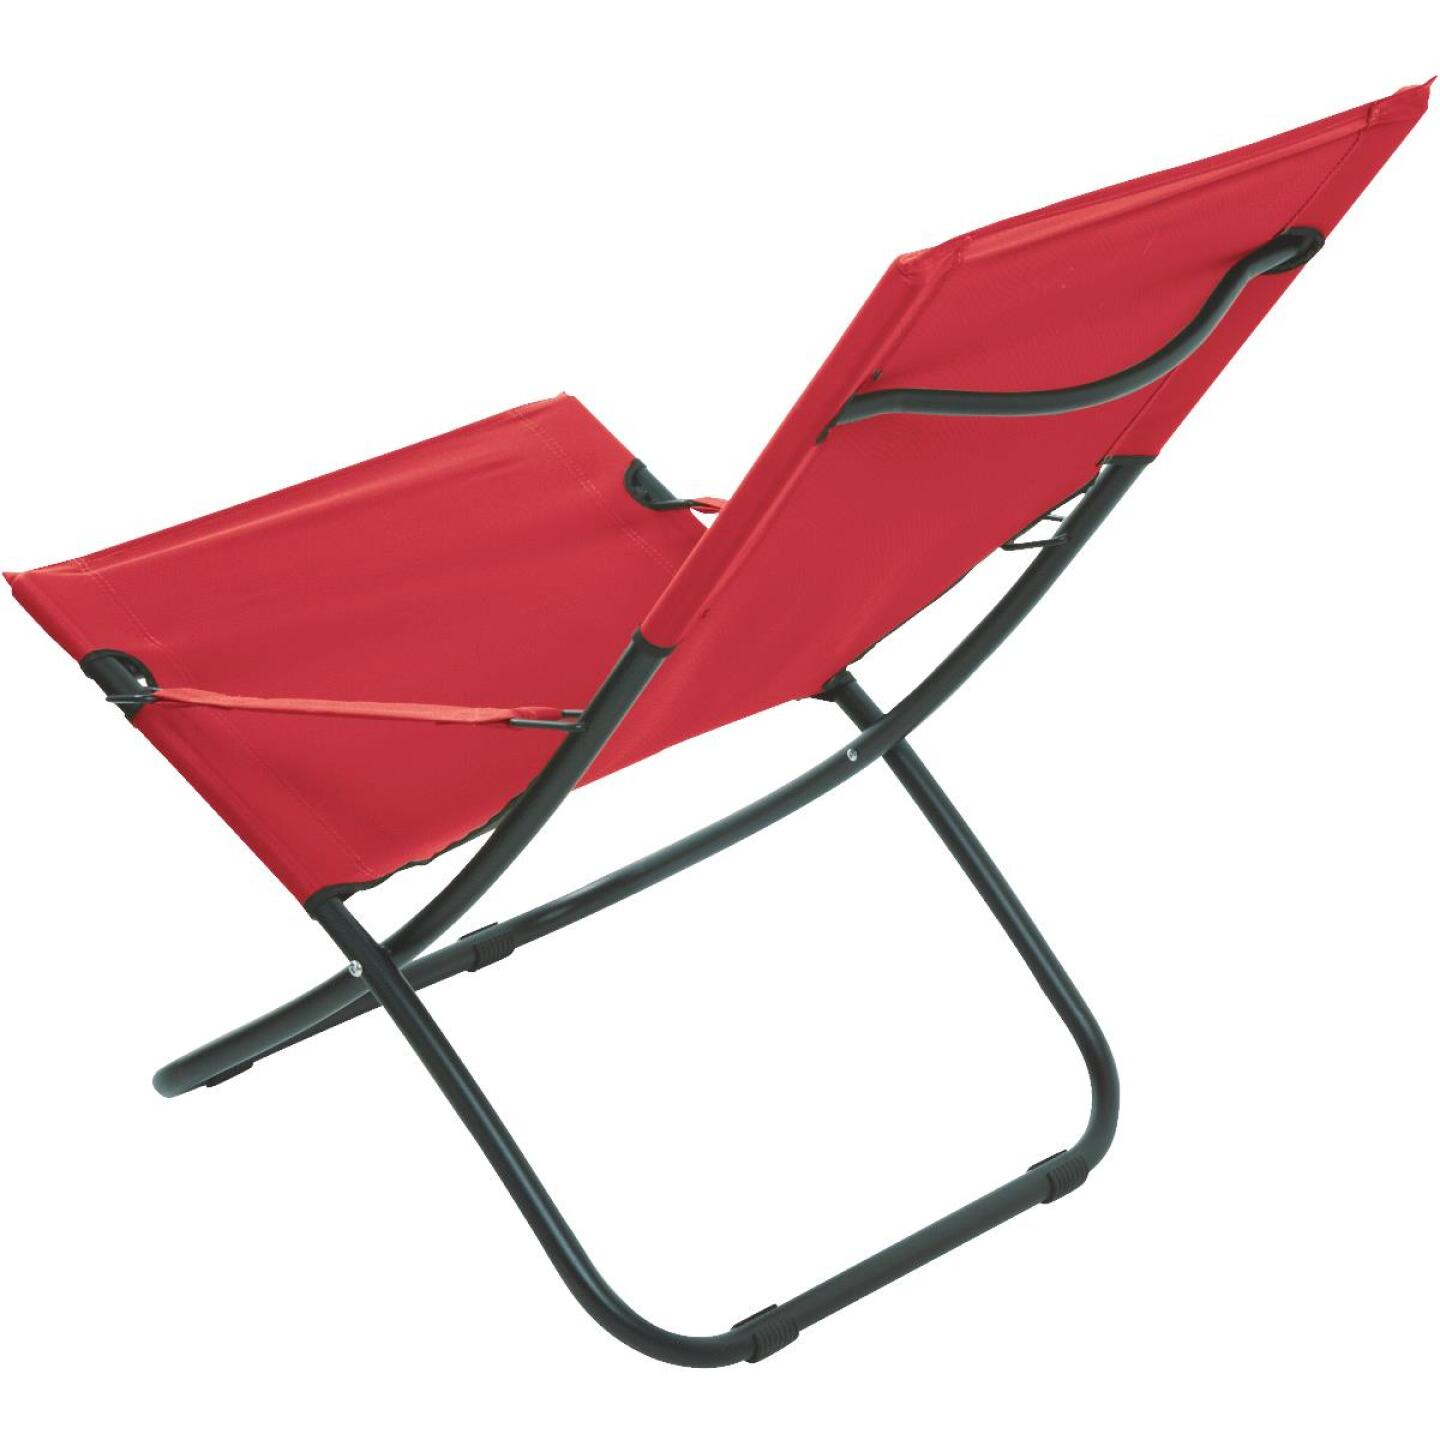 Pride Family Brands Folding Hammock Chair, Red Image 3